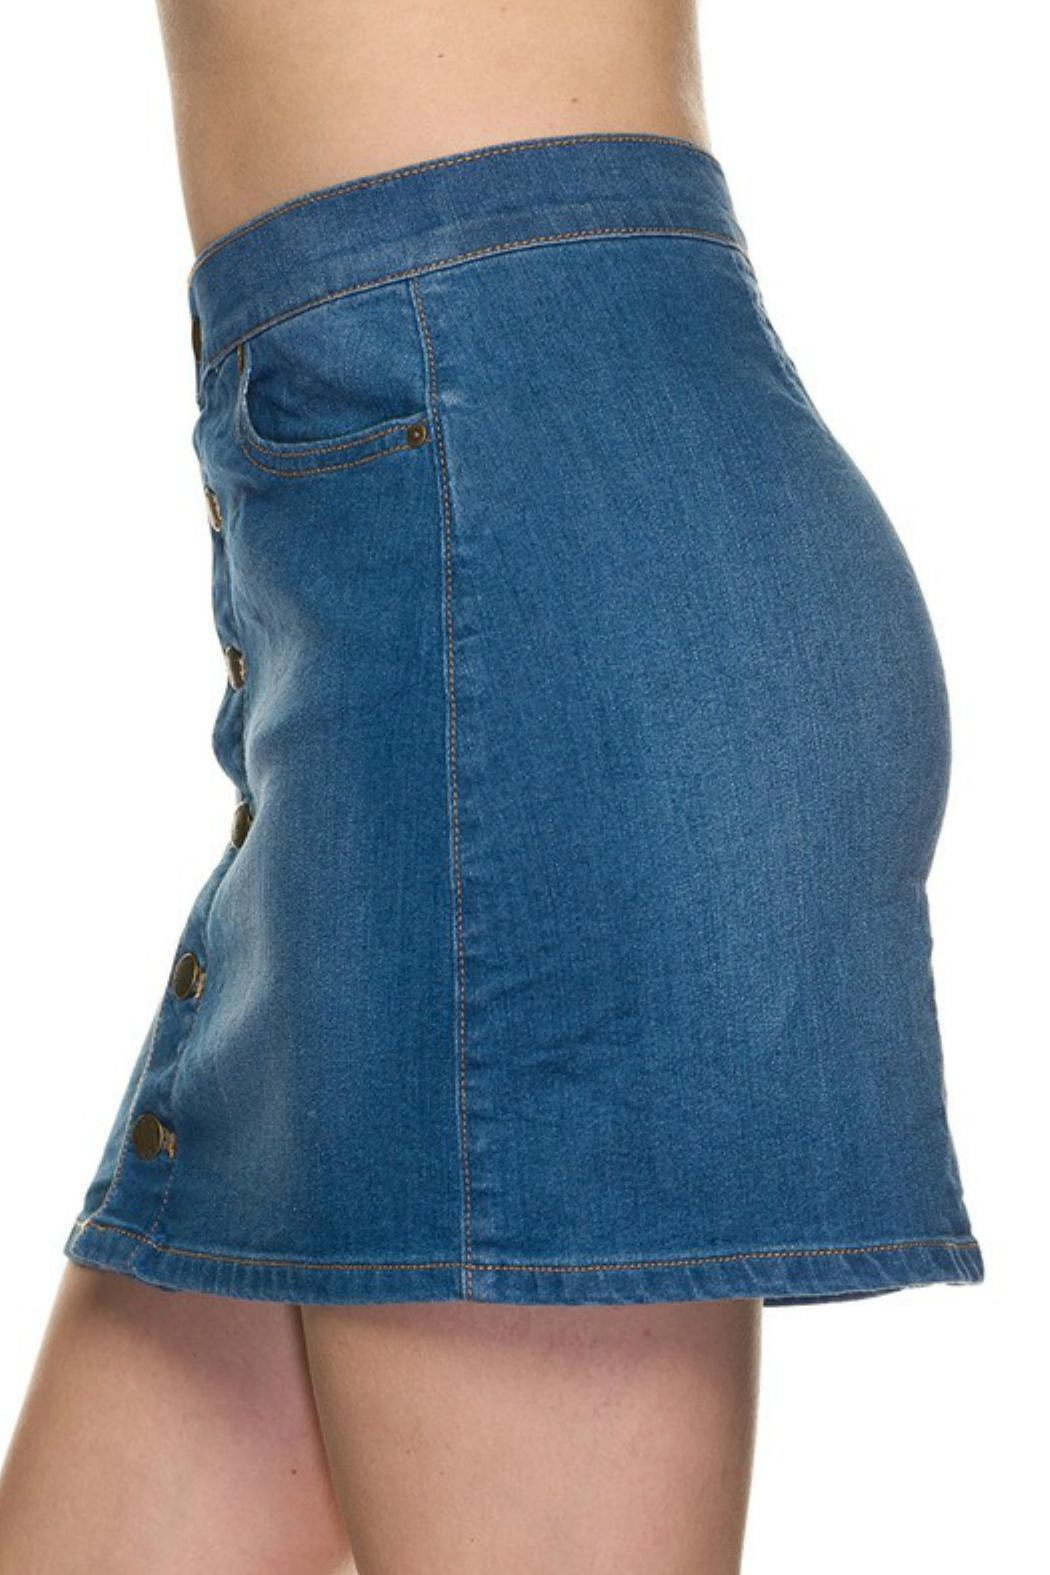 wax jean basic button denim skirt from fayetteville by